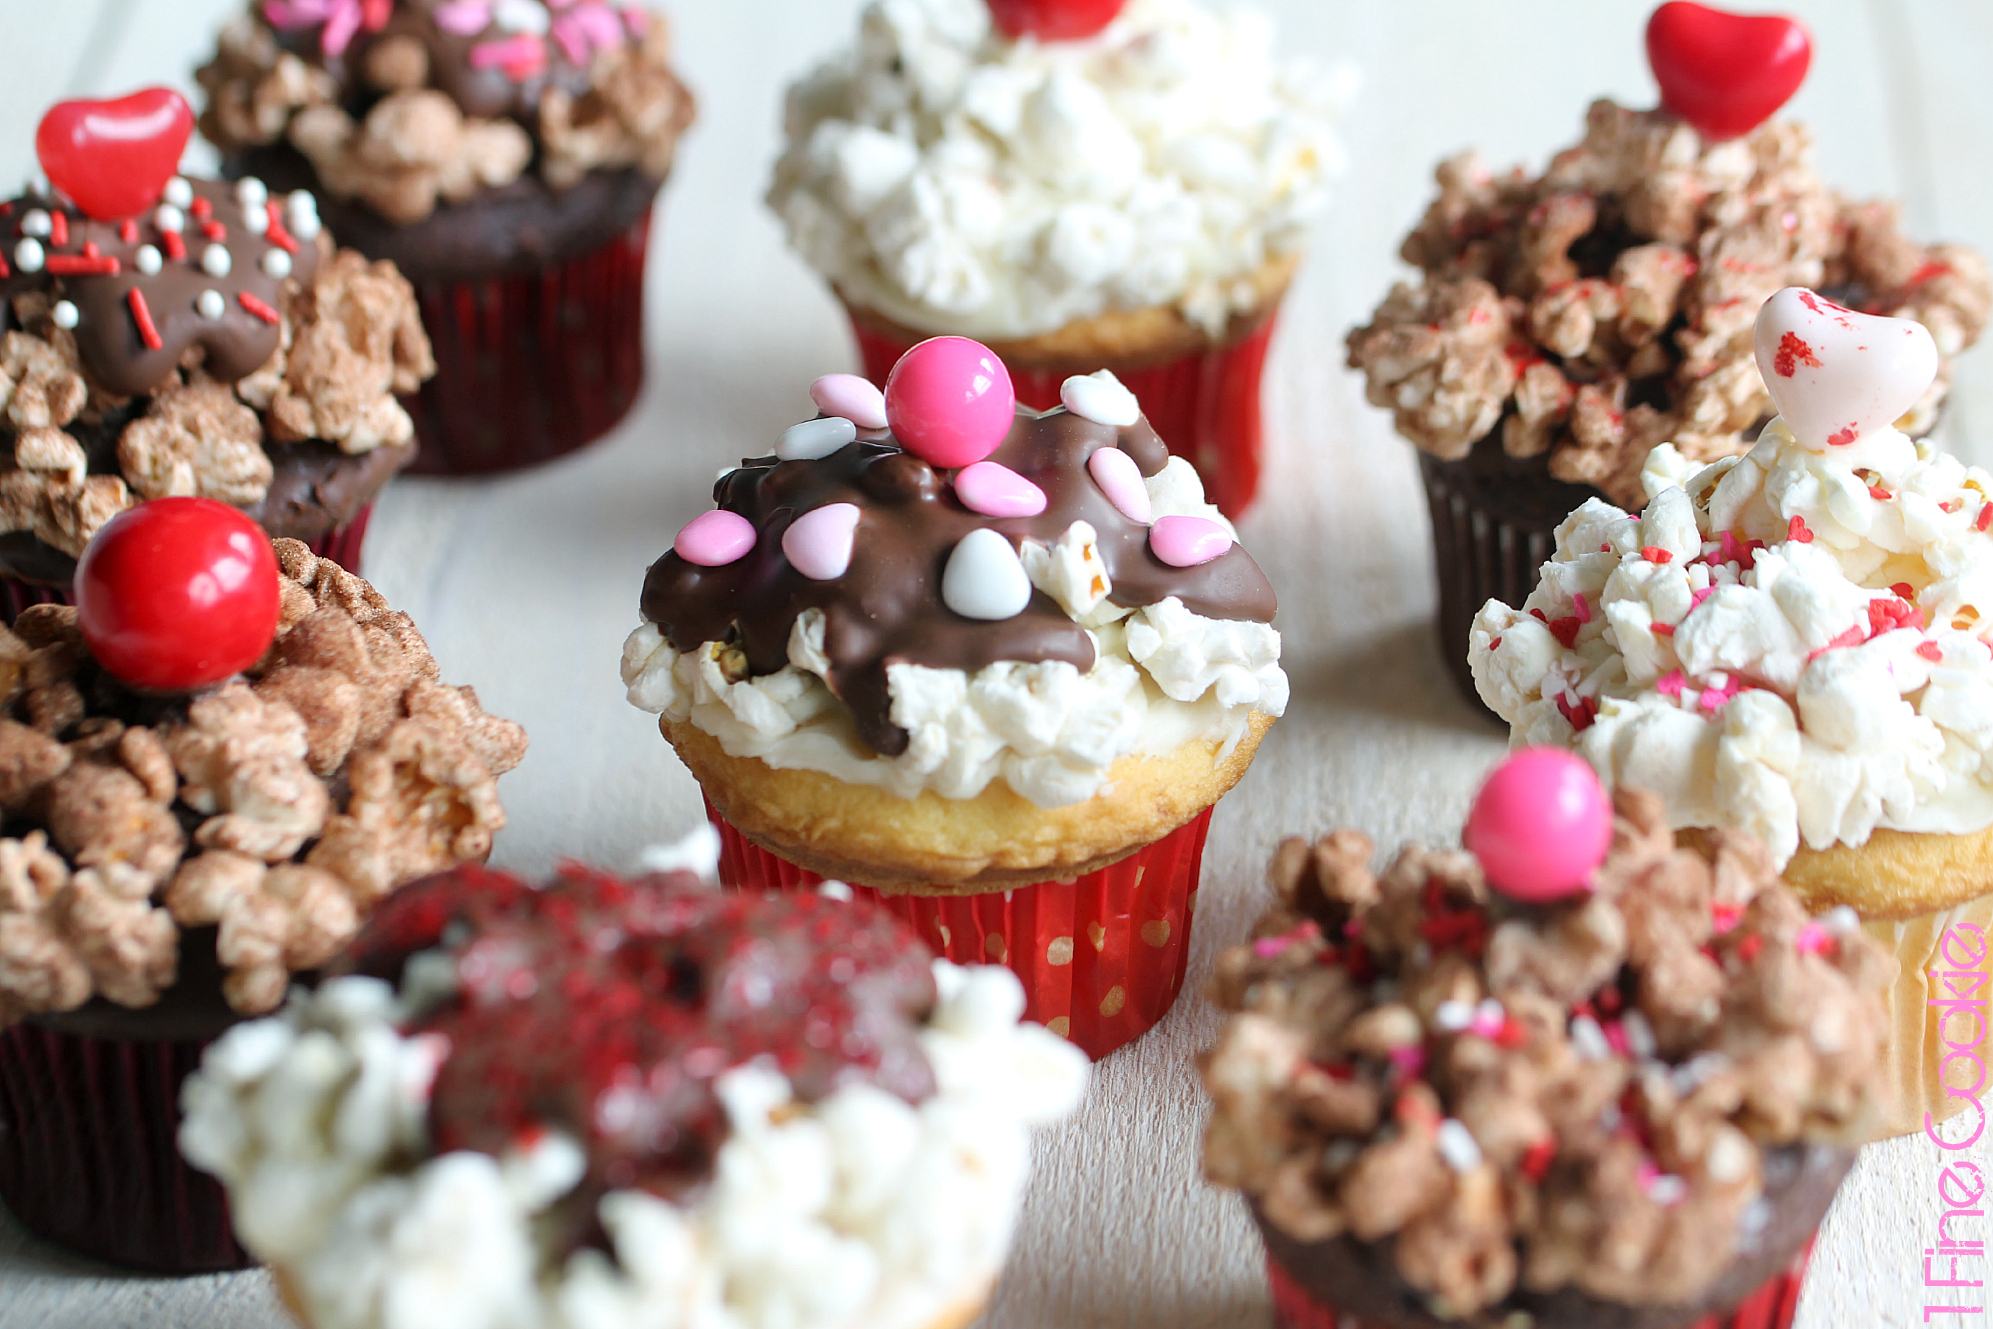 Valentine's Popcorn Sundae Cupcakes by 1 Fine Cookie, valentine's, day, recipe, cupcake, chocolate, vanilla, yellow, cake, pink, red, white, sprinkles, popcorn, seasoned, salty, savory, sweet, sprinkles, sundae, party, idea, cherry, heart, brown, white, ice, cream, dessert, sweets, fudge,